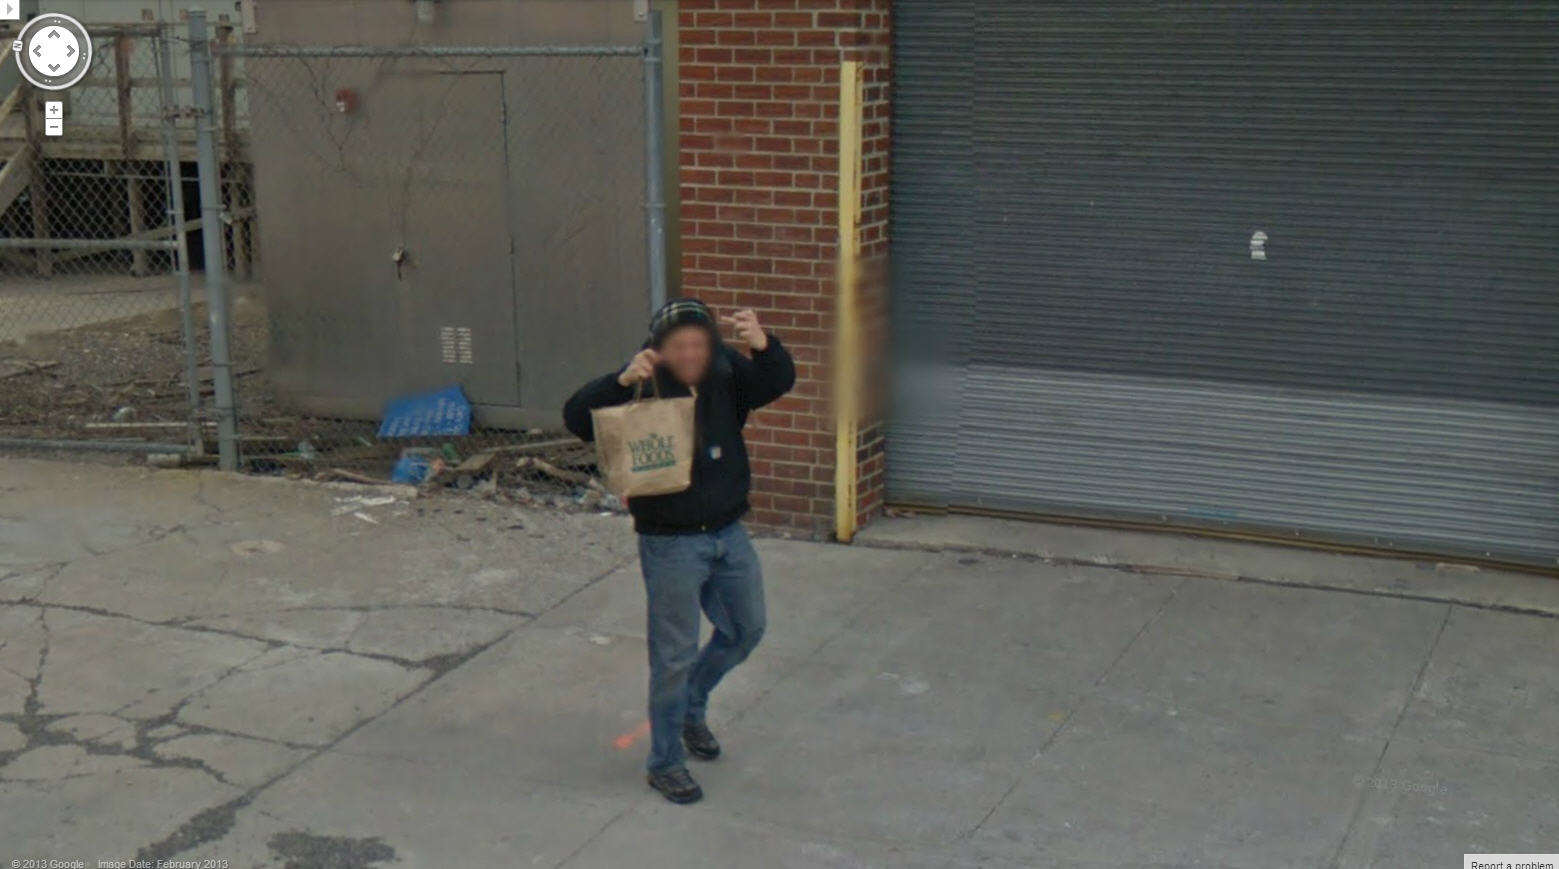 Another New Yorker Fingering Google Street View